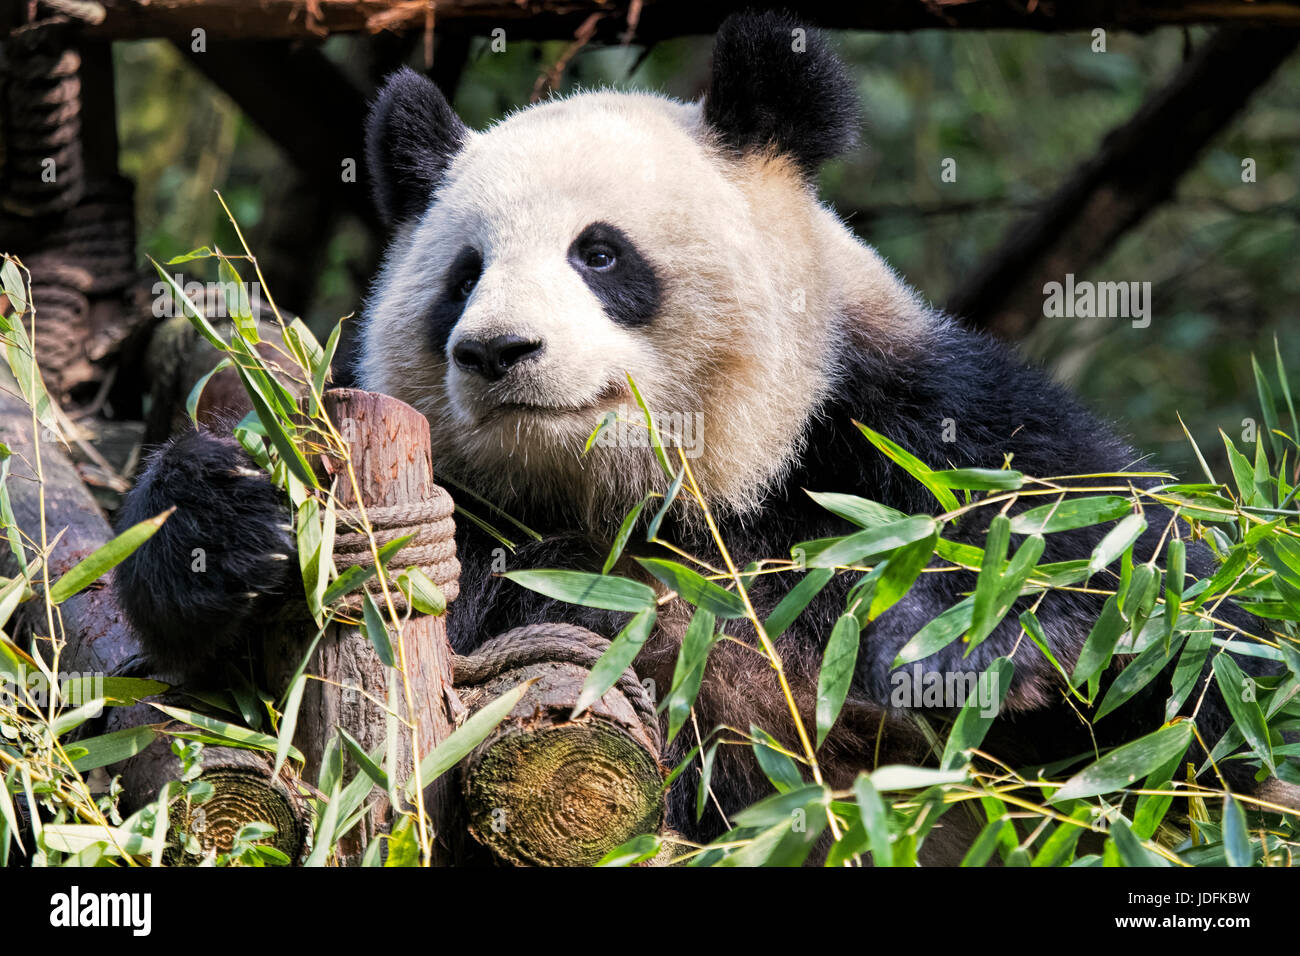 Adult Giant Panda eating bamboo at the Chengdu Research Base of Giant Panda Breeding, Chengdu, China - Stock Image